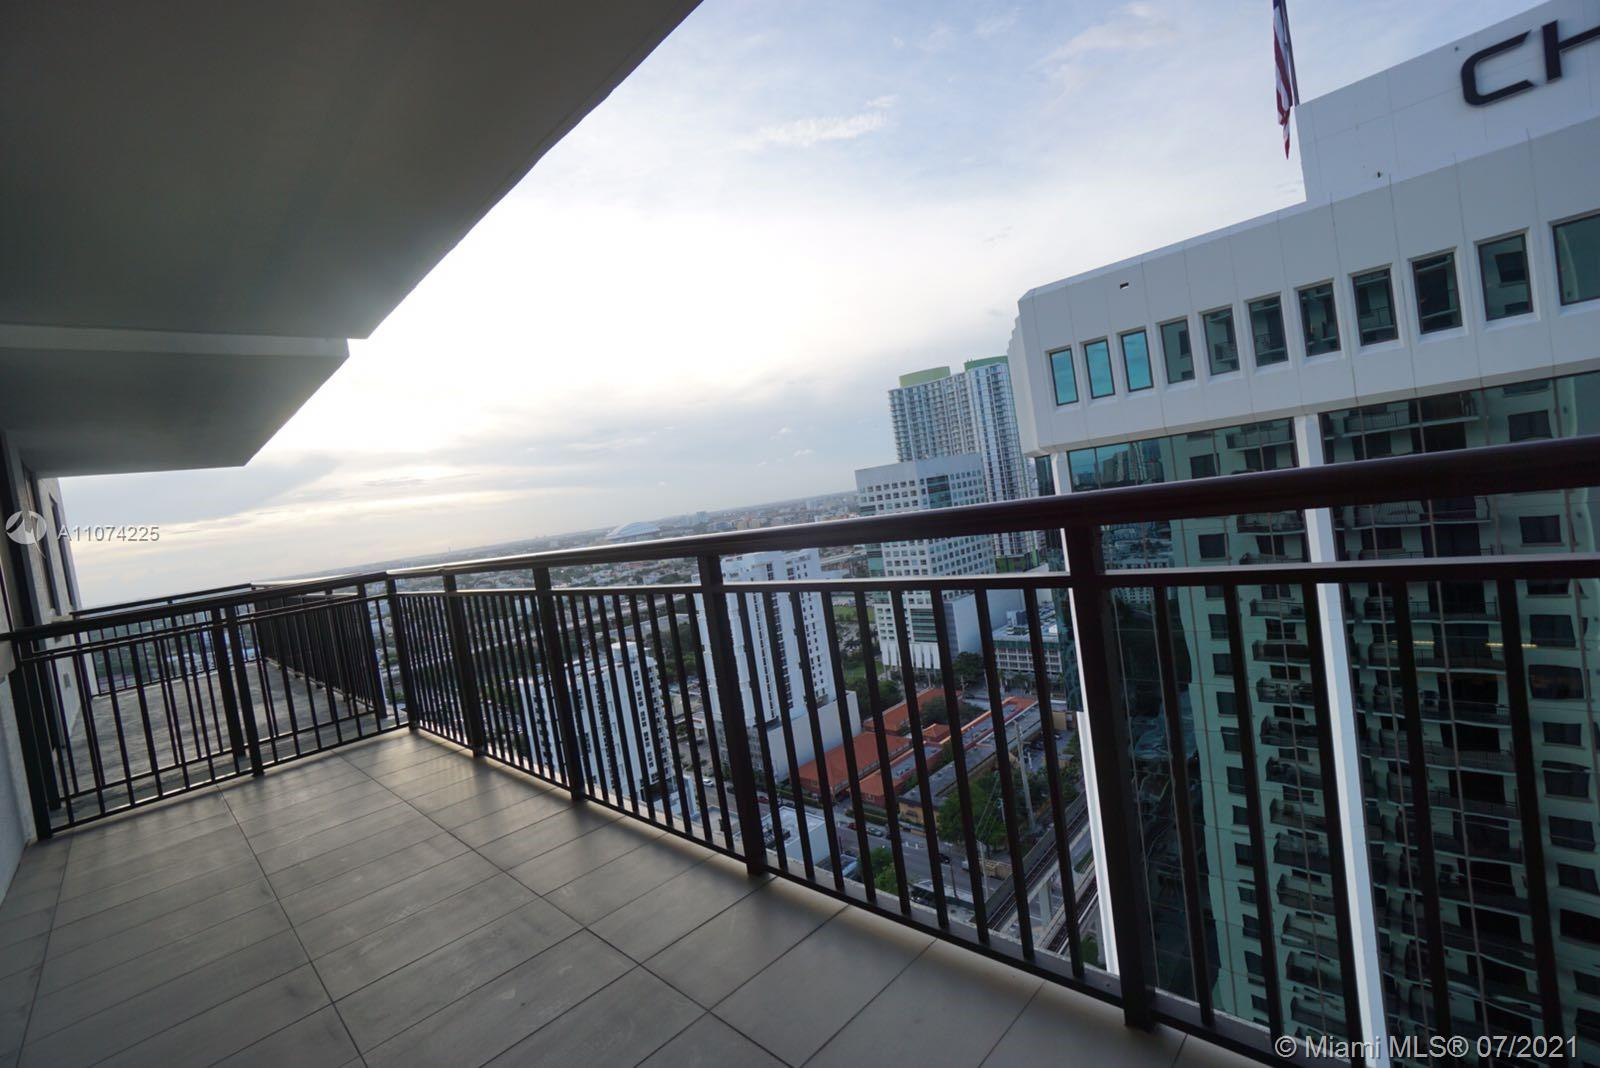 999 SW 1st Ave #2915 For Sale A11074225, FL